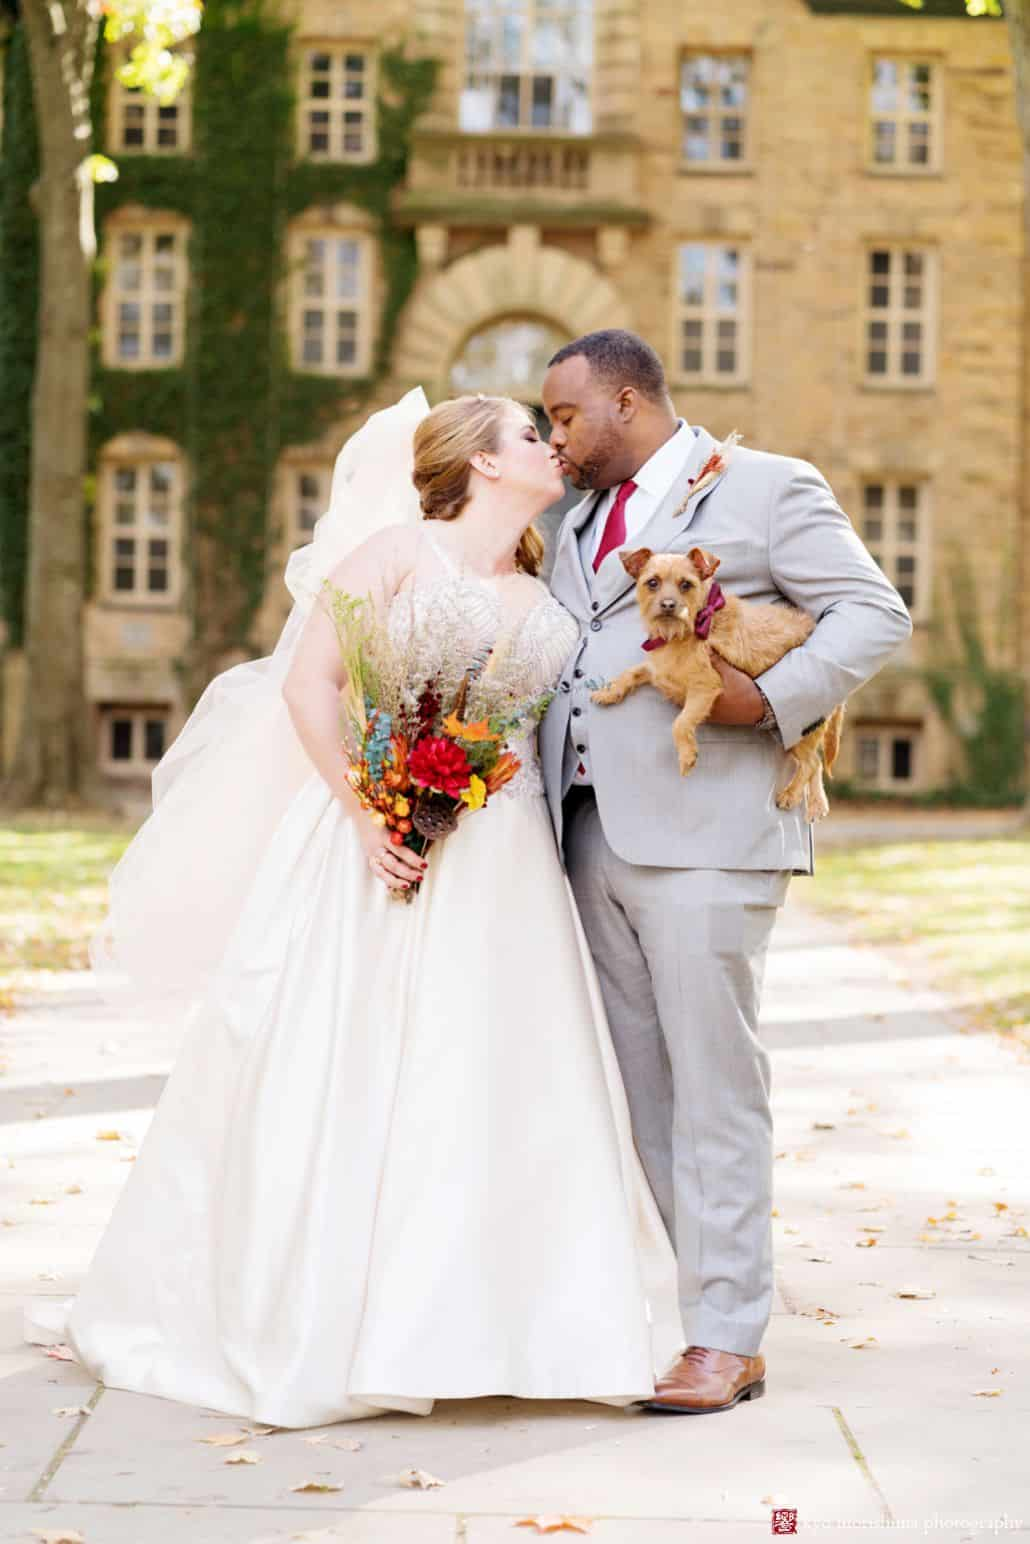 Fall wedding portrait at Princeton University with groom holding small dog; wedding bouquet with fall colors